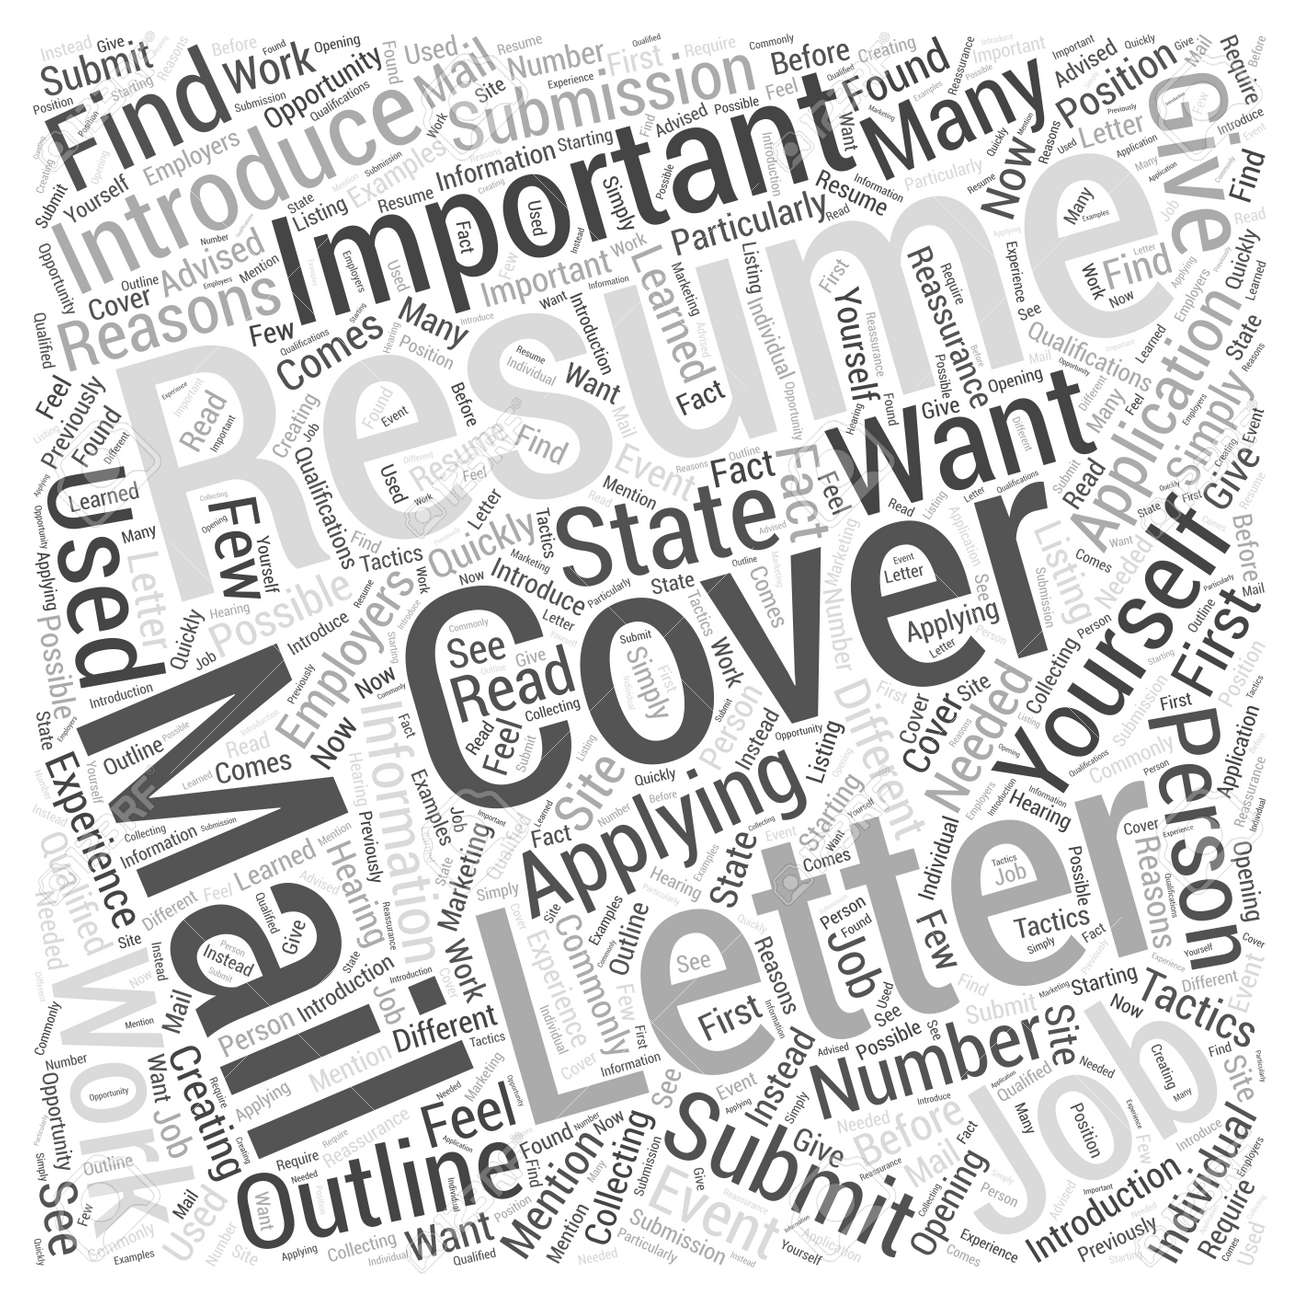 resume submission the importance of cover letters word cloud resume submission the importance of cover letters word cloud concept stock vector 67300389